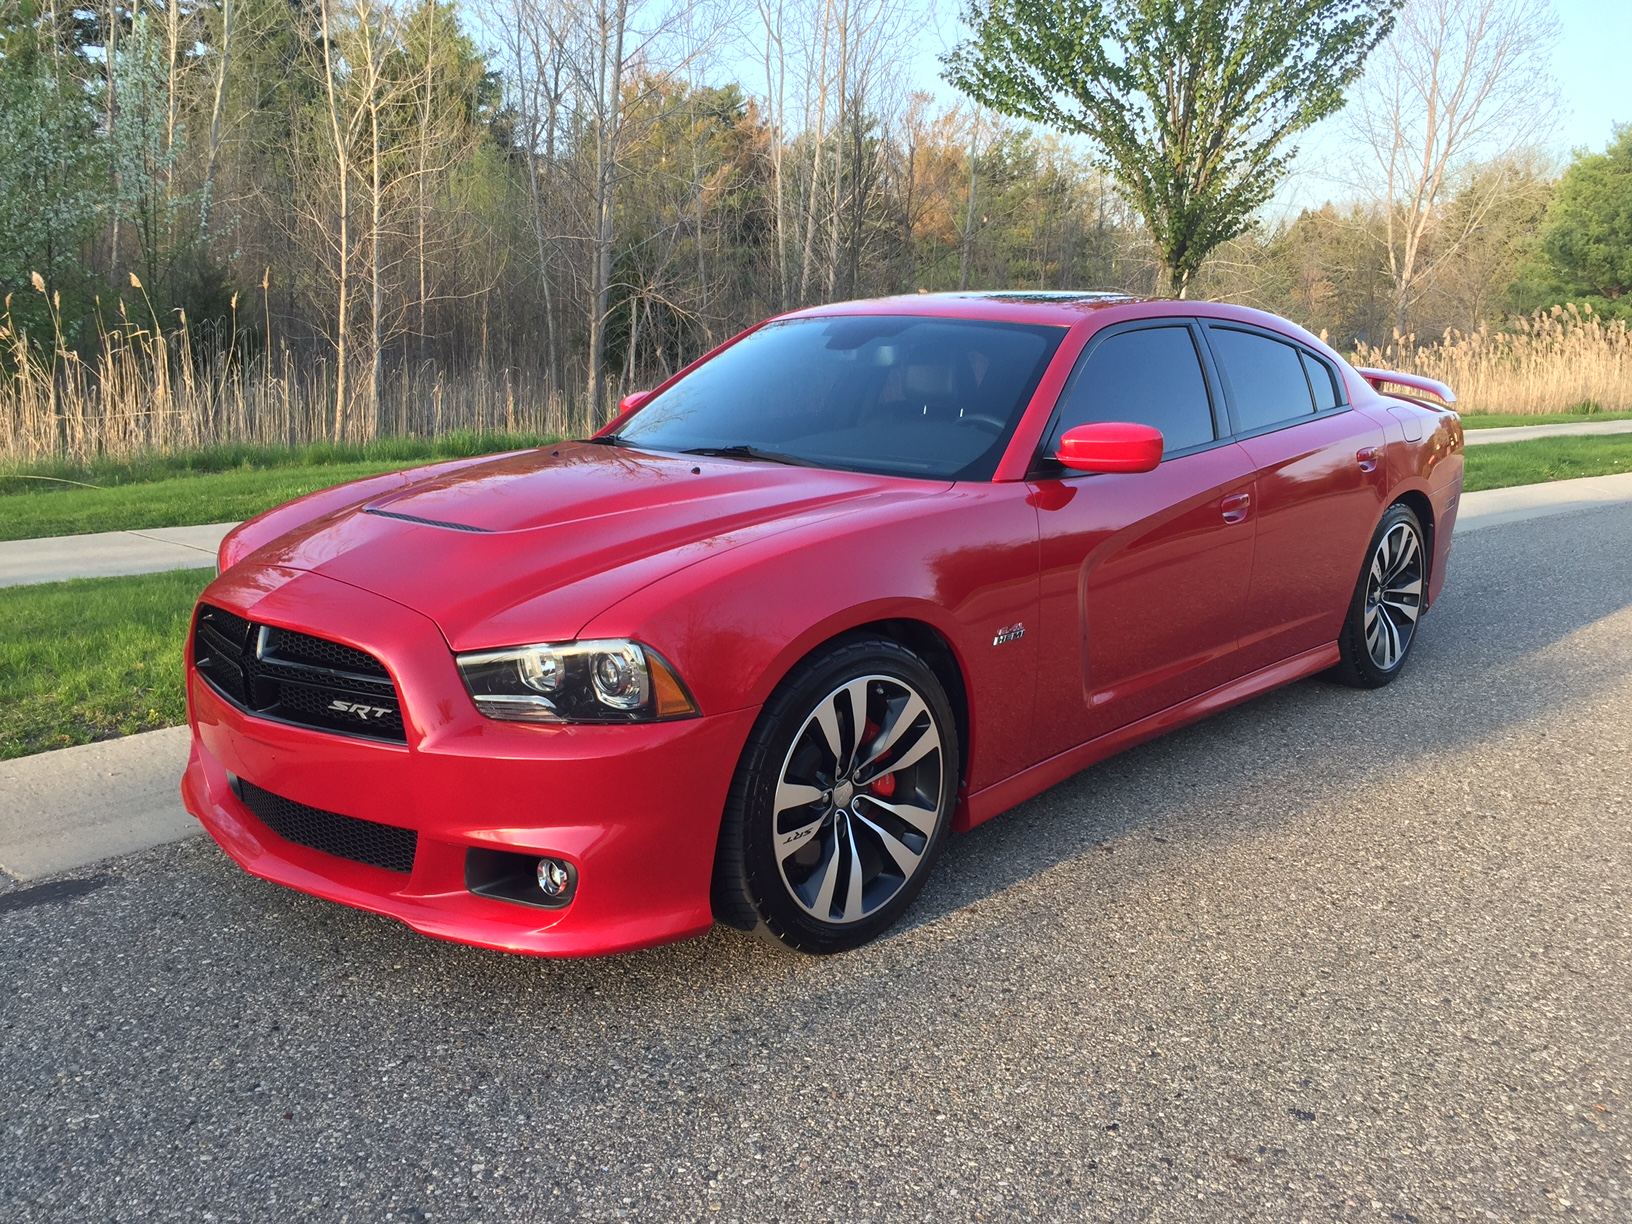 for sale 2012 dodge charger srt8 pearl red. Black Bedroom Furniture Sets. Home Design Ideas